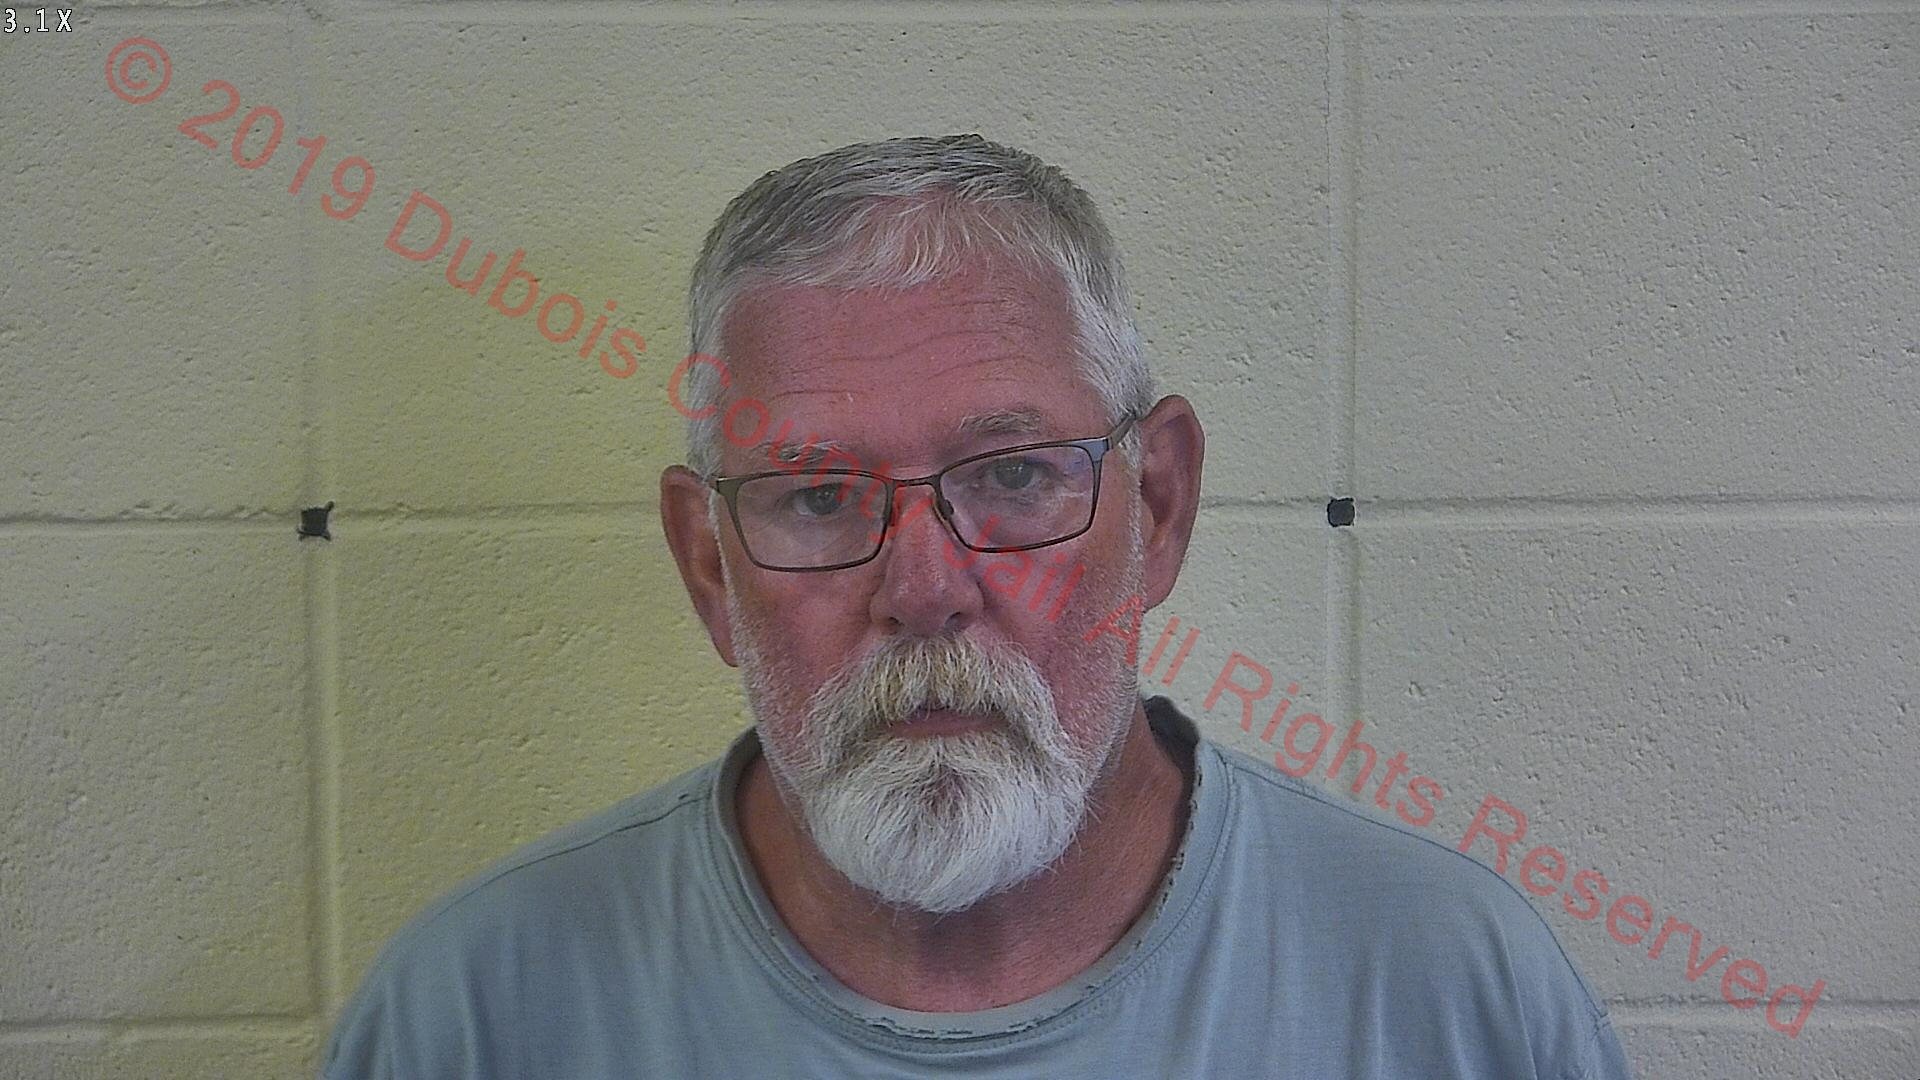 Huntingburg Man Arrested on Child Molestation Charges